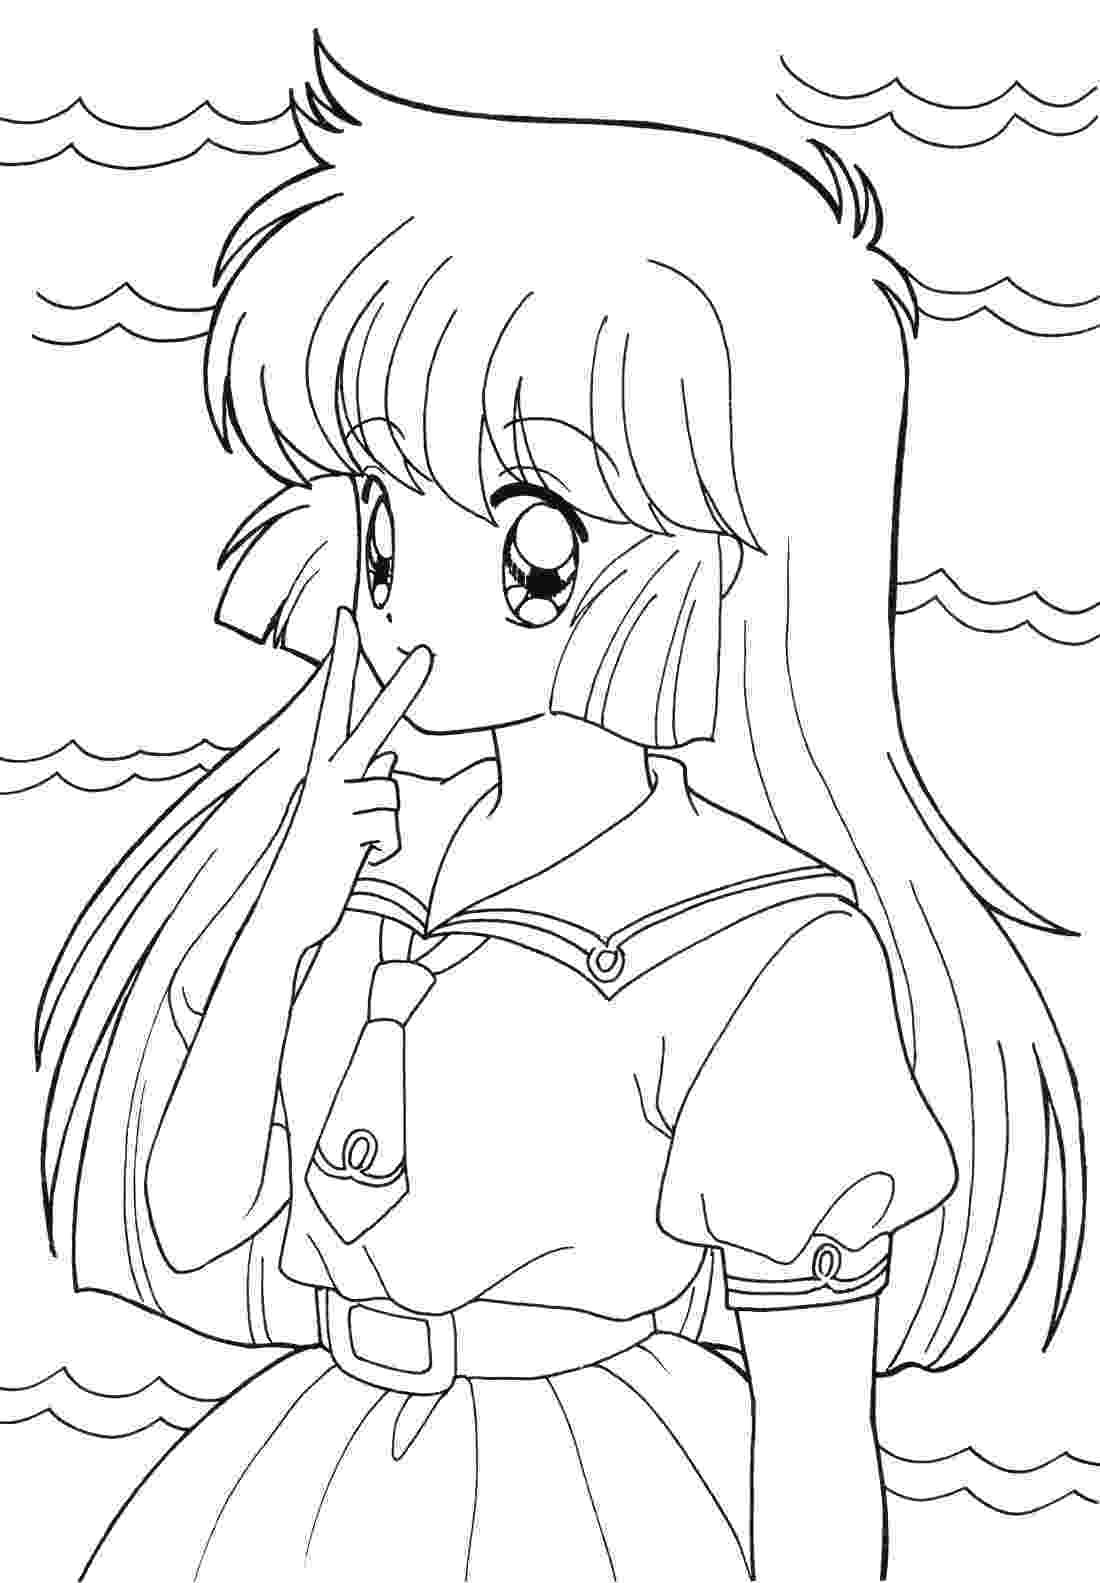 anime girl coloring pages anime coloring pages best coloring pages for kids pages anime coloring girl